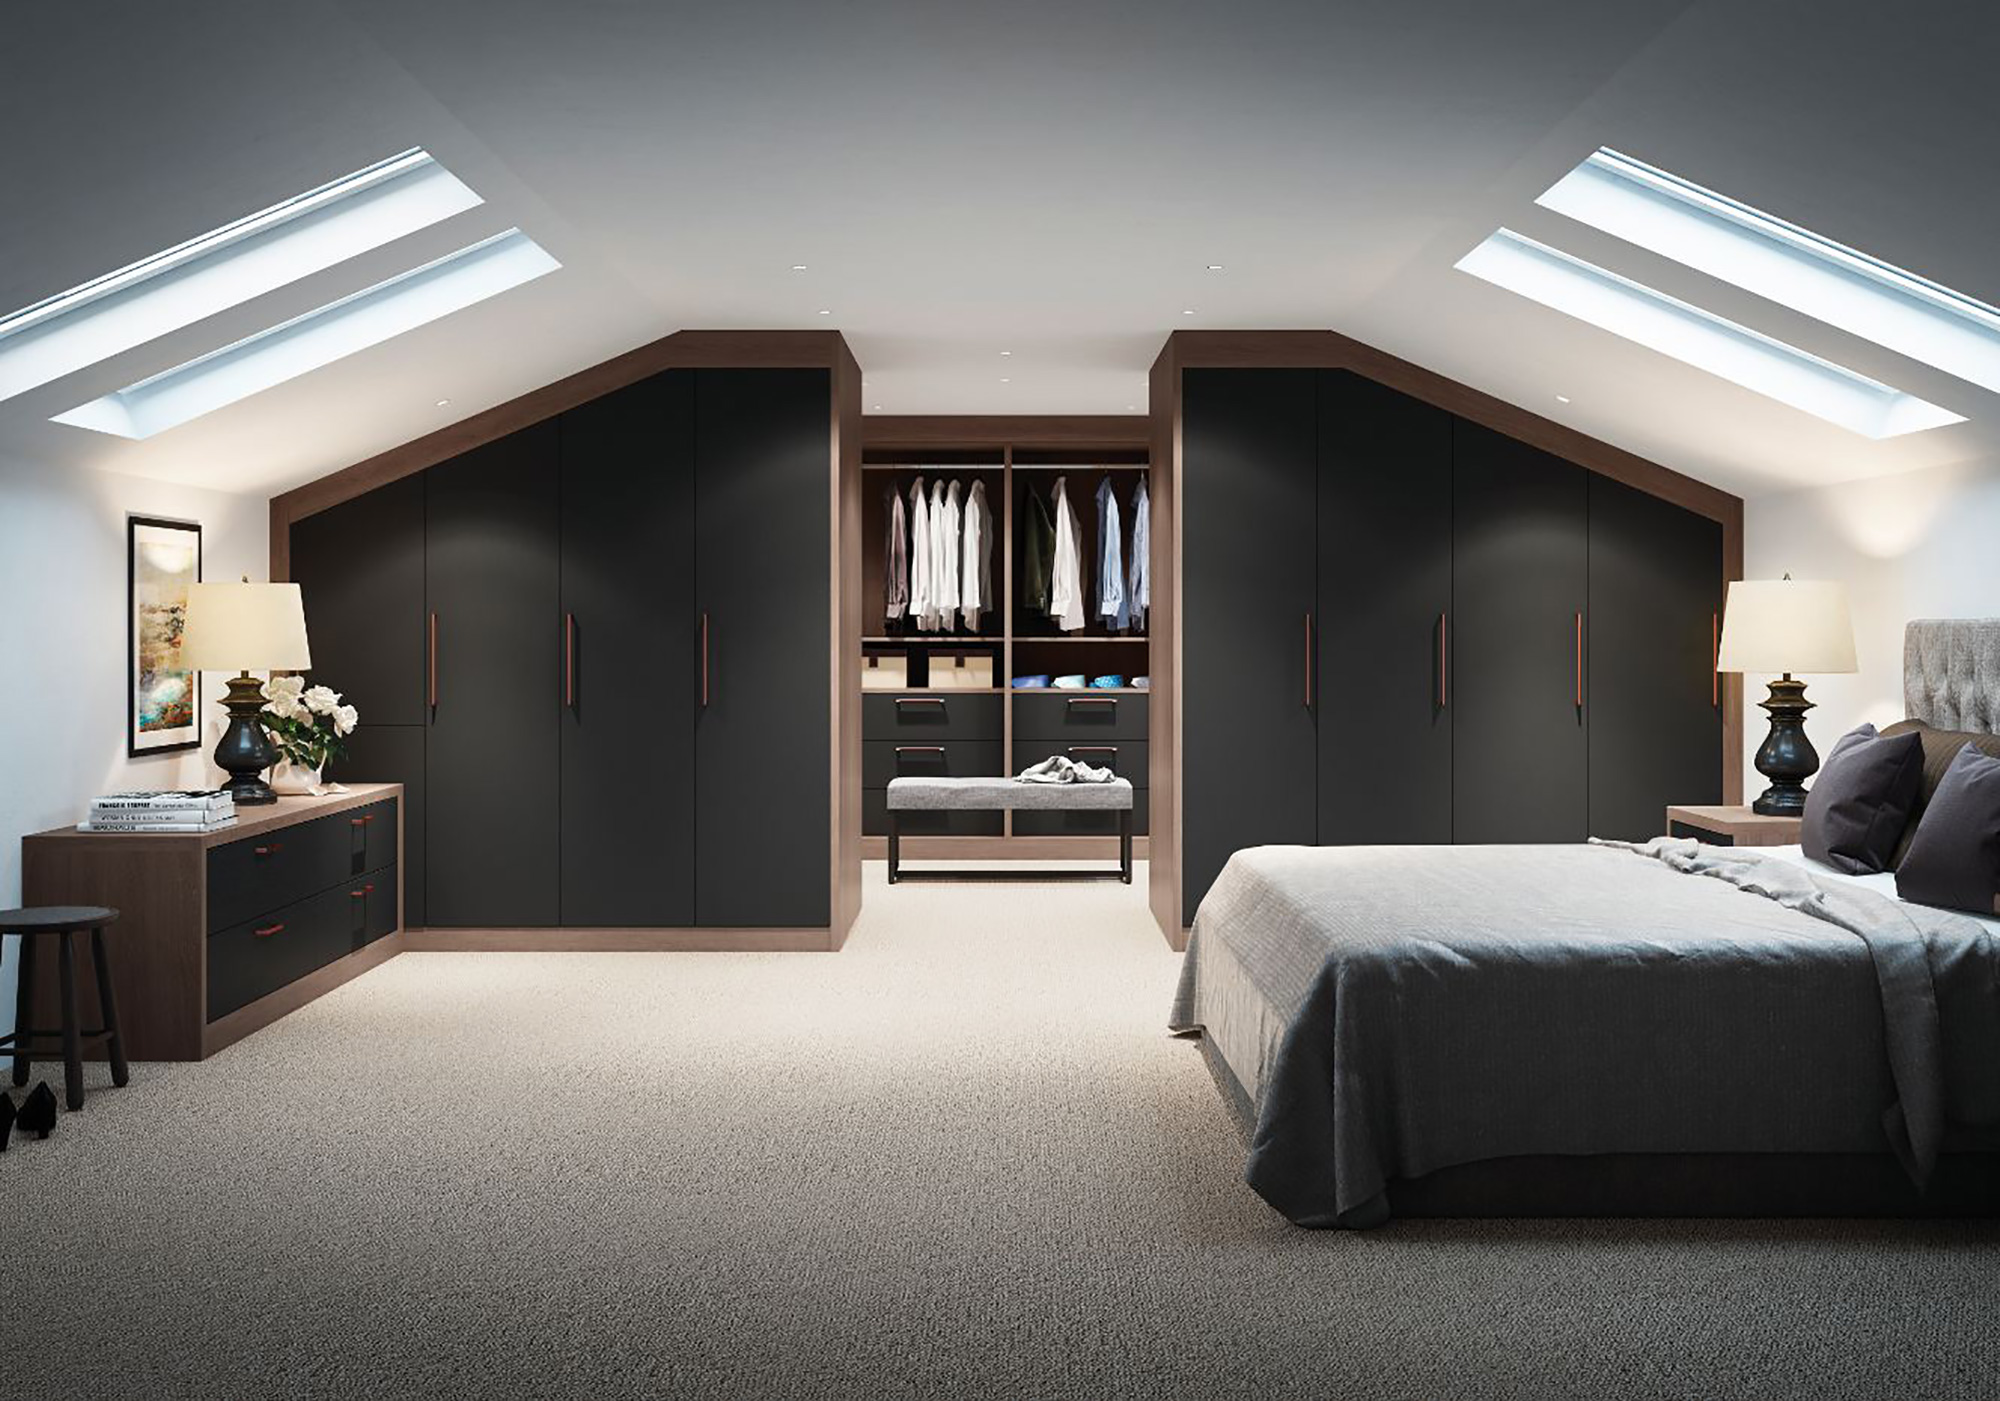 Designing a bedroom to comfort, cocoon and calm - Creative Interiors